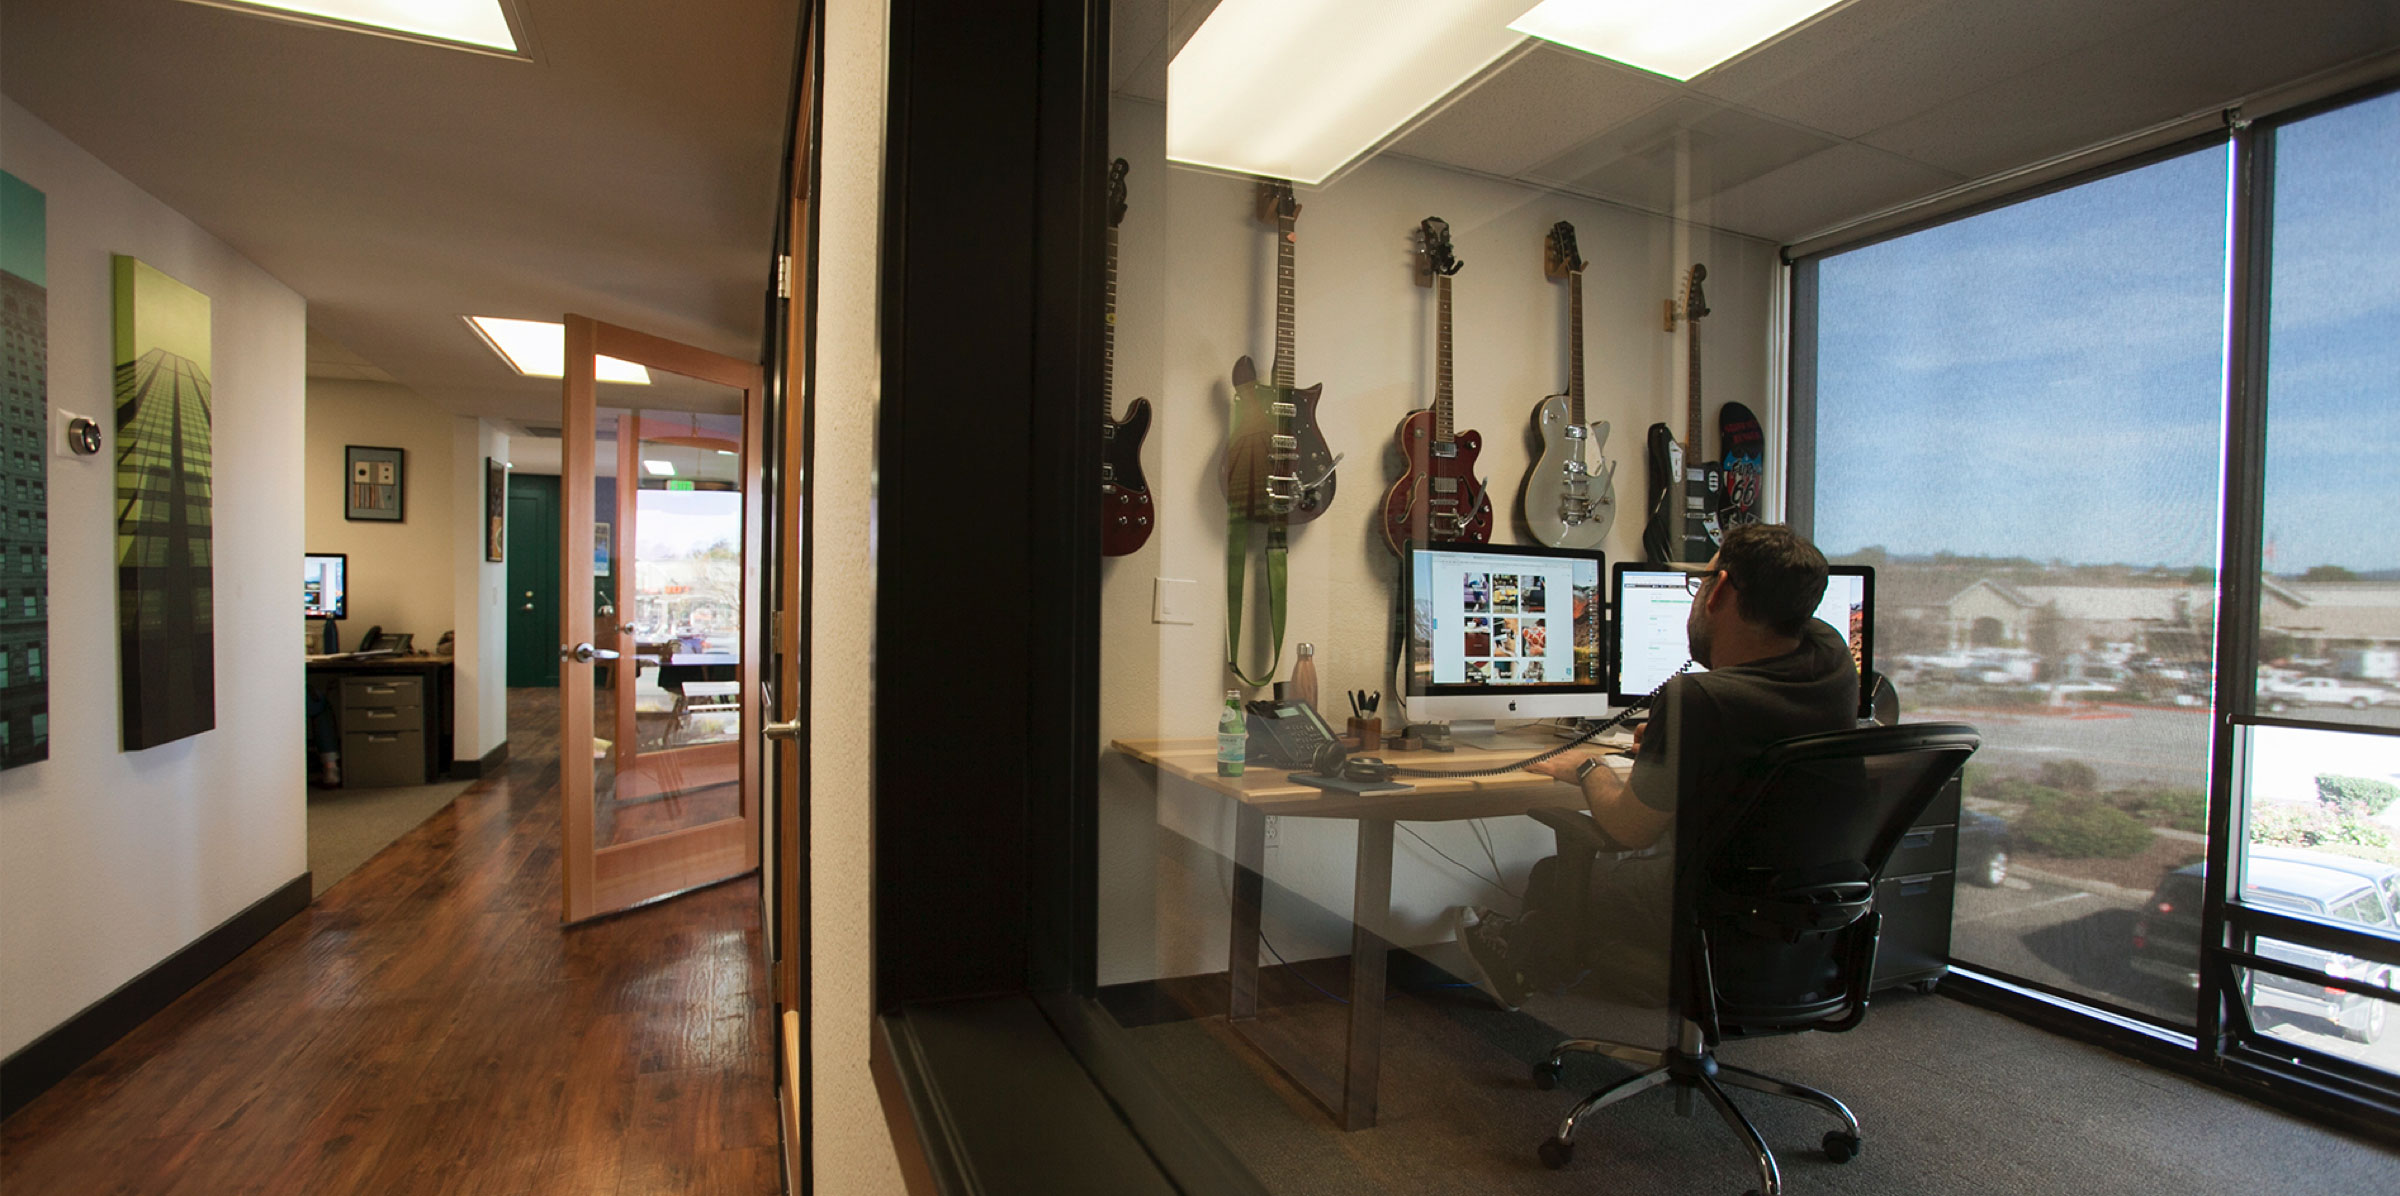 jon in his office full of guitars